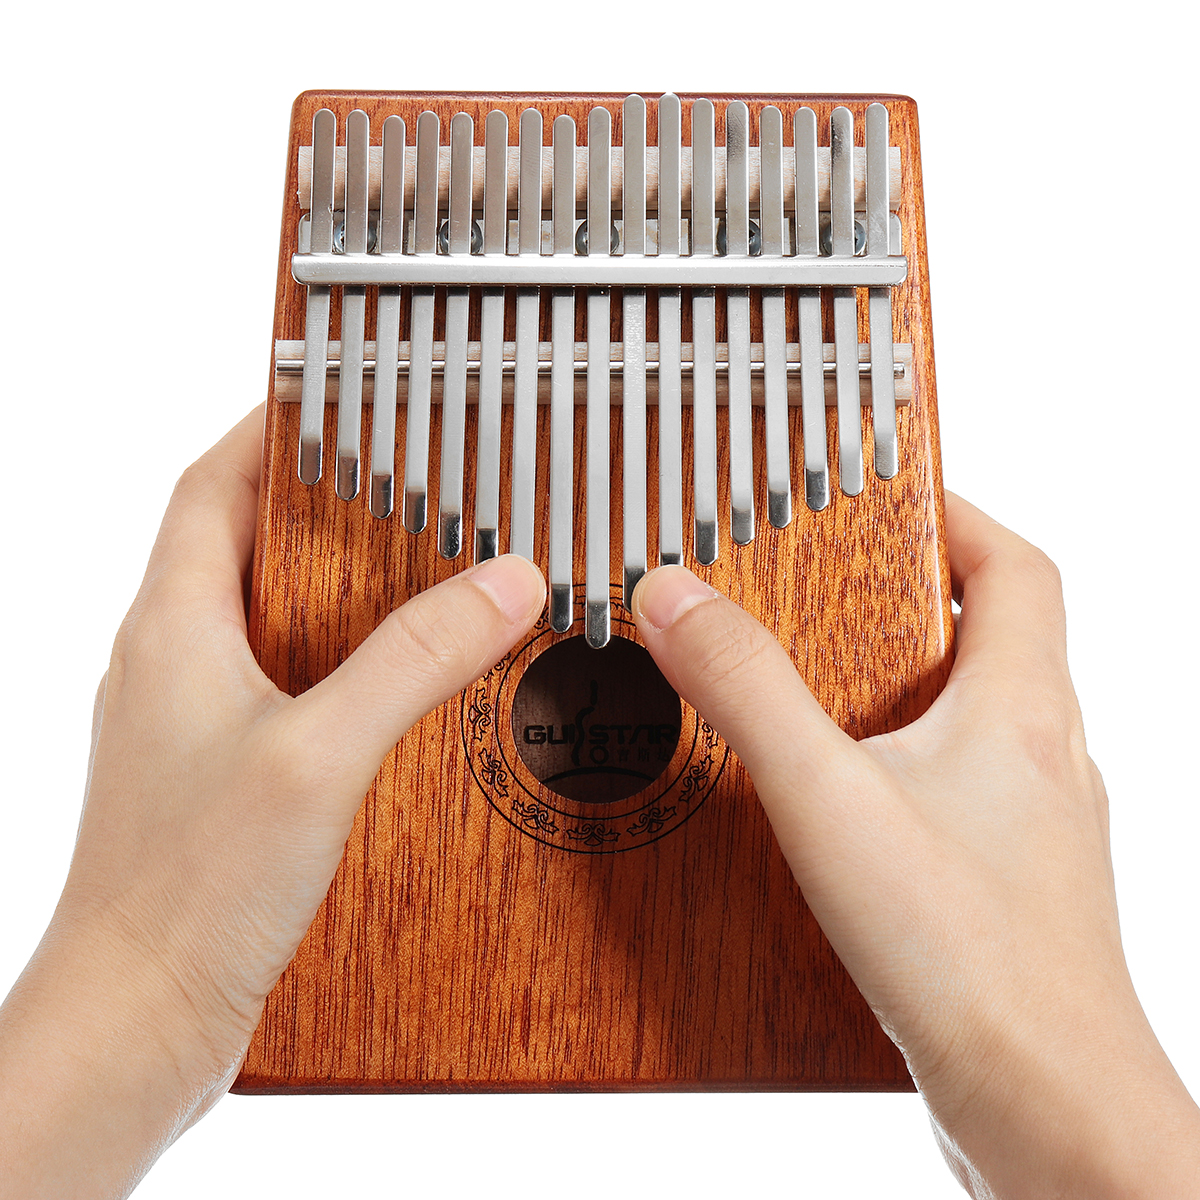 17 Keys Wood Kalimba Mahogany Thumb Piano Finger Percus